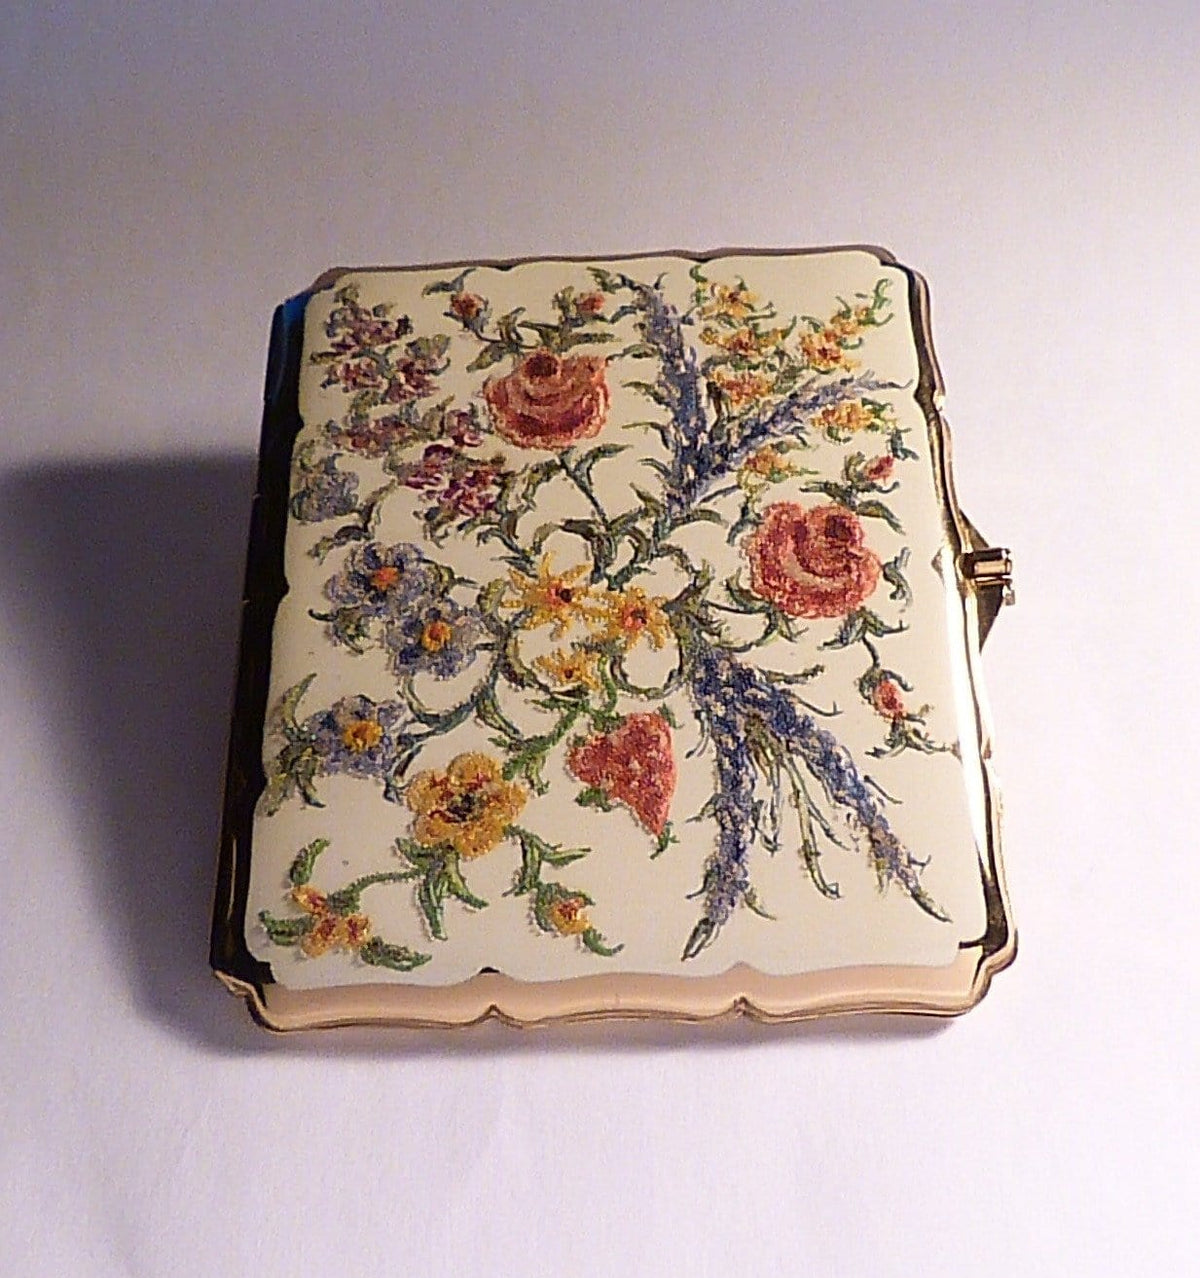 Antique enamel cigarette cases Stratton accessories BALLOTINI mid-century cigarette and business card cases 1950s - The Vintage Compact Shop